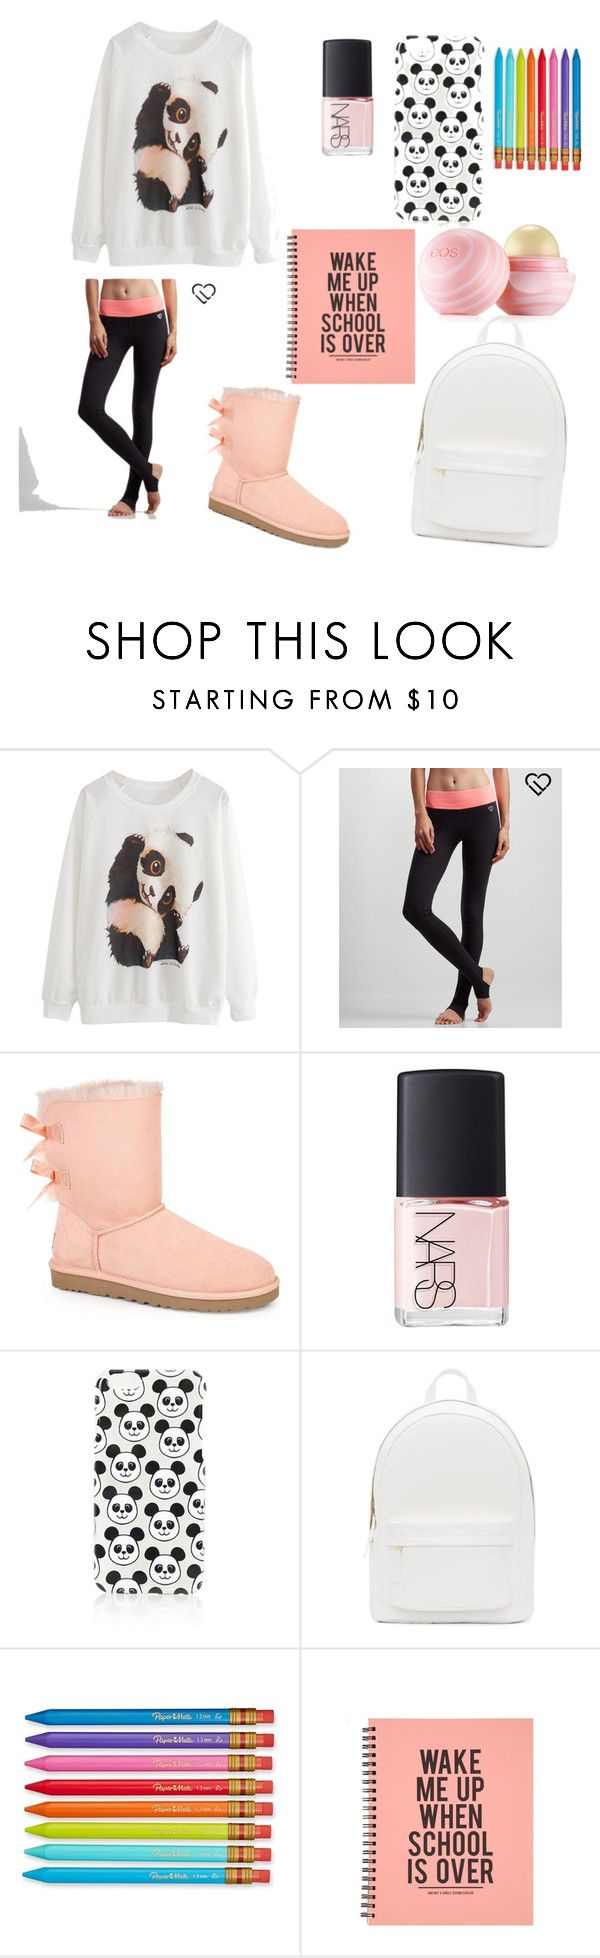 """""""PJ day at school on Monday"""" by ahriraine ❤ liked on Polyvore featuring Aéropostale, UGG Australia, NARS Cosmetics, Topshop, PB 0110, Paper Mate and Eos"""